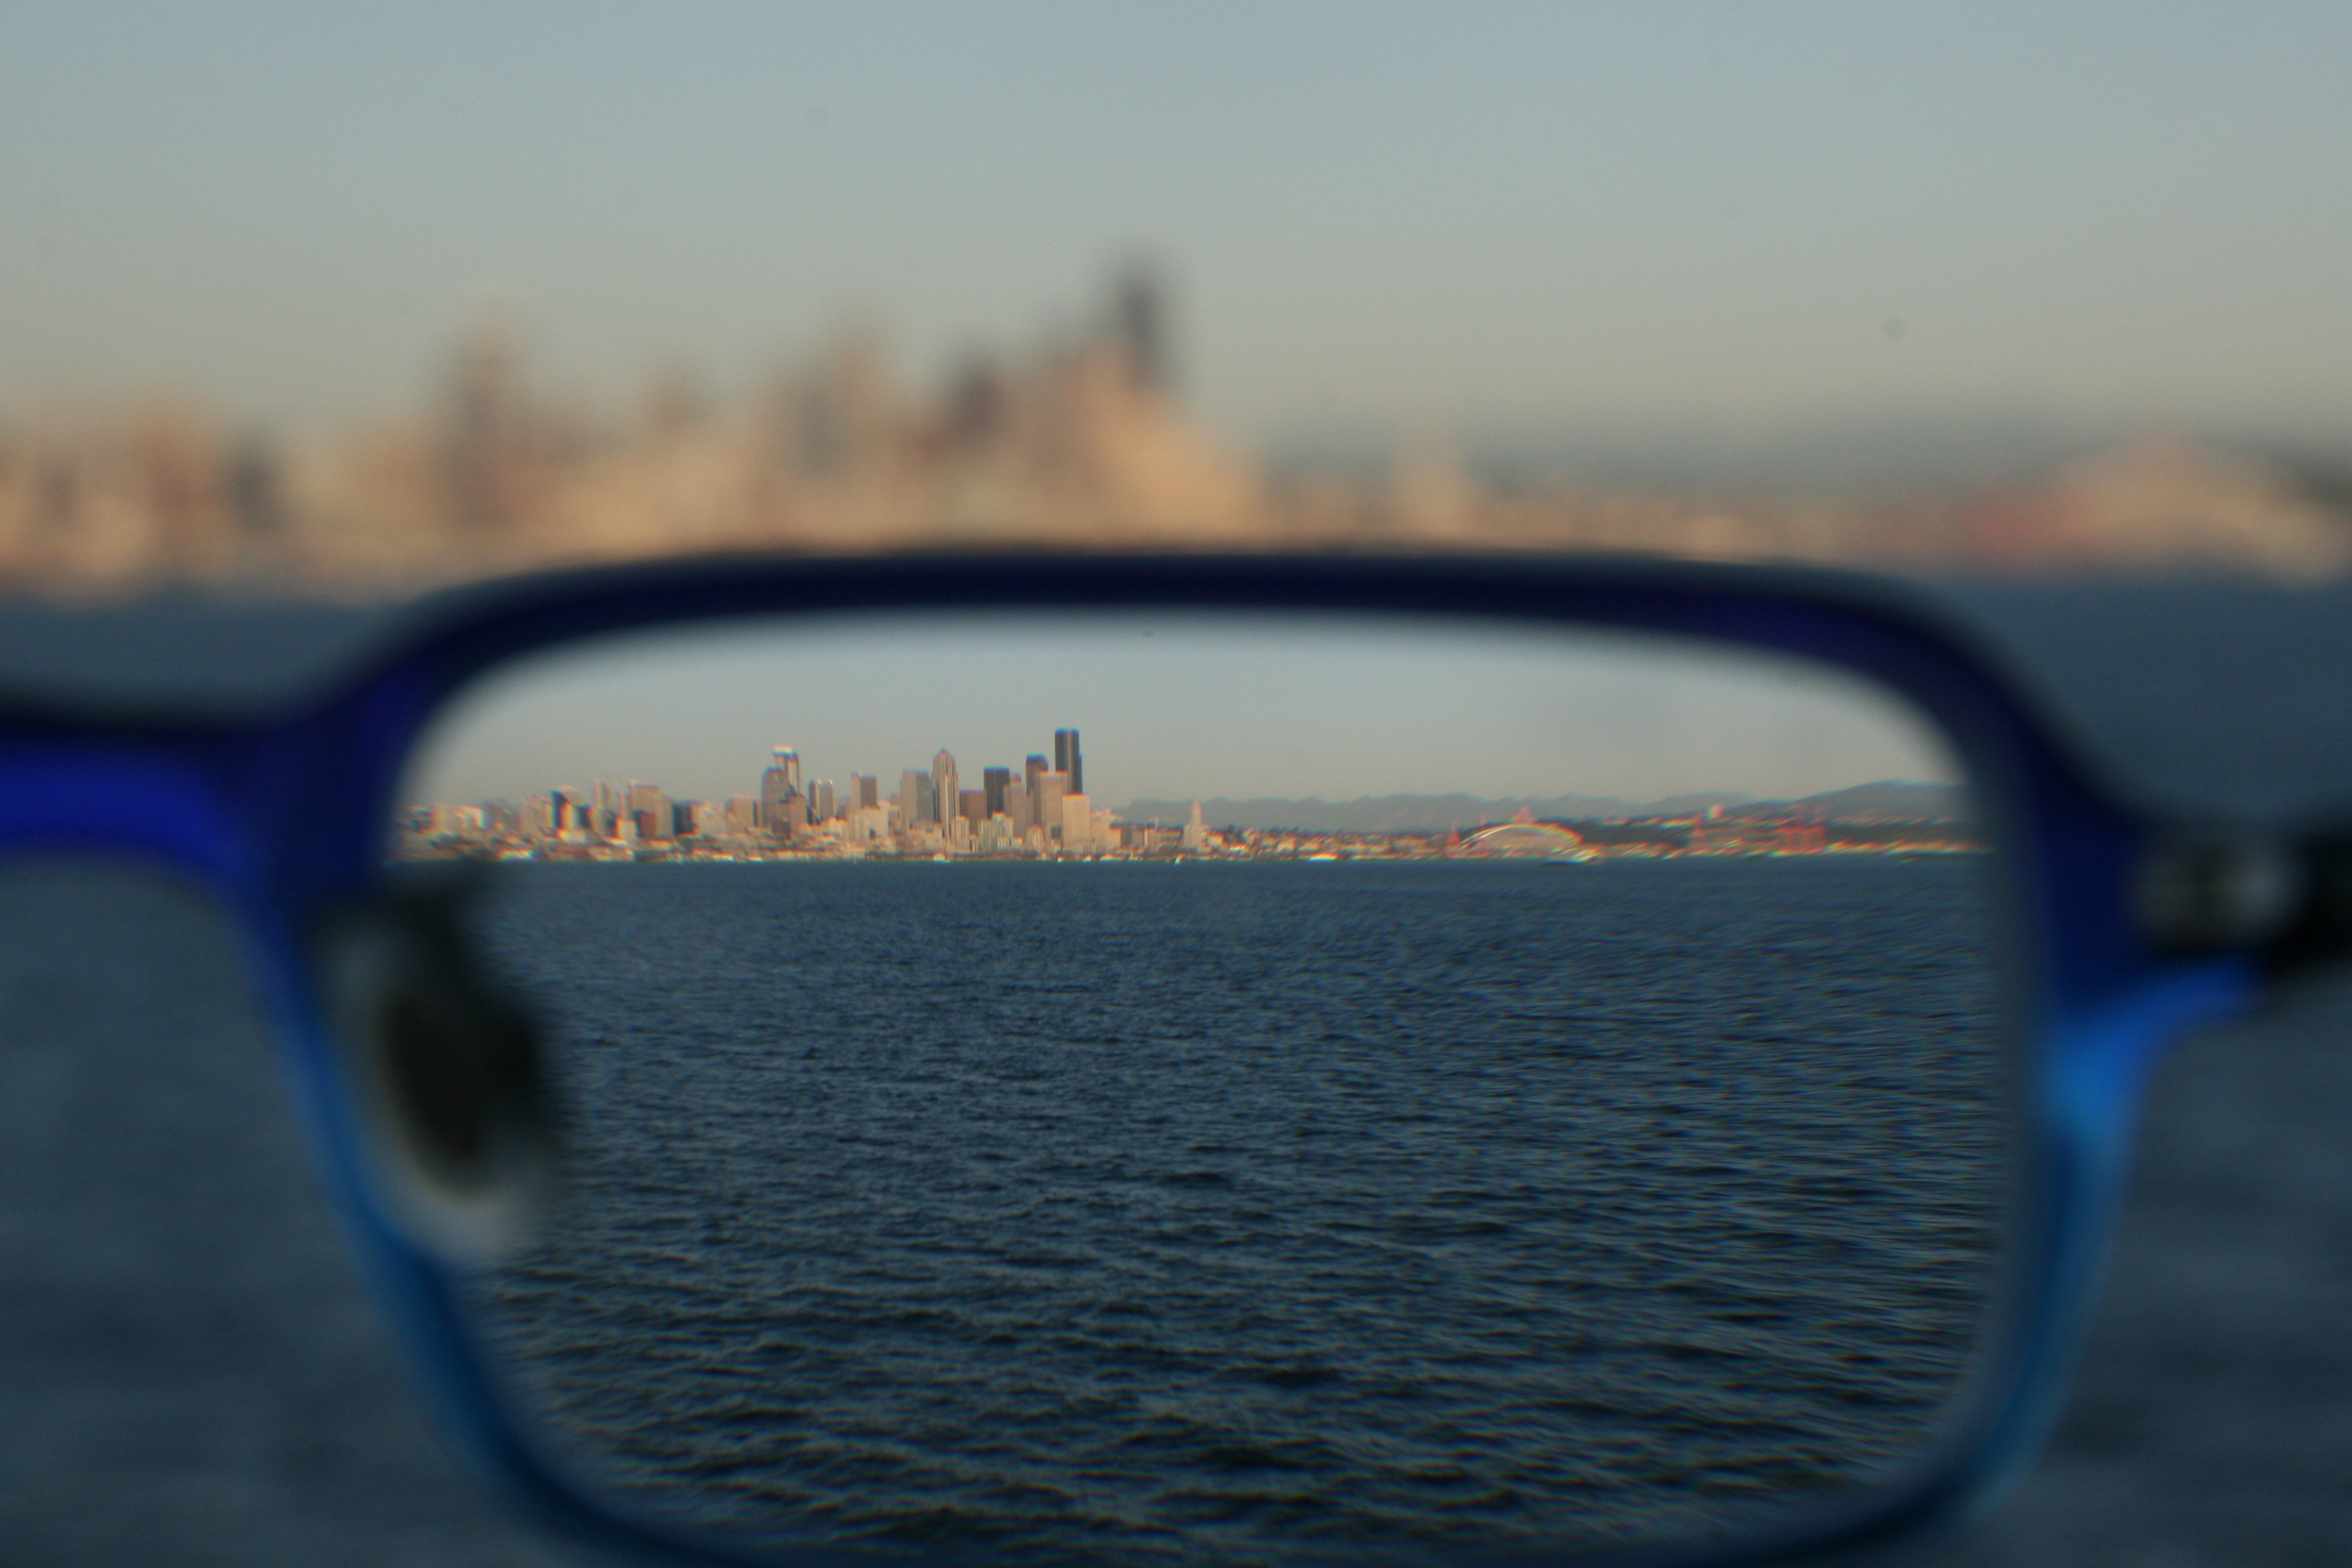 File:Refraction through glasses 090306.jpg From Wikimedia Commons, the free media repository